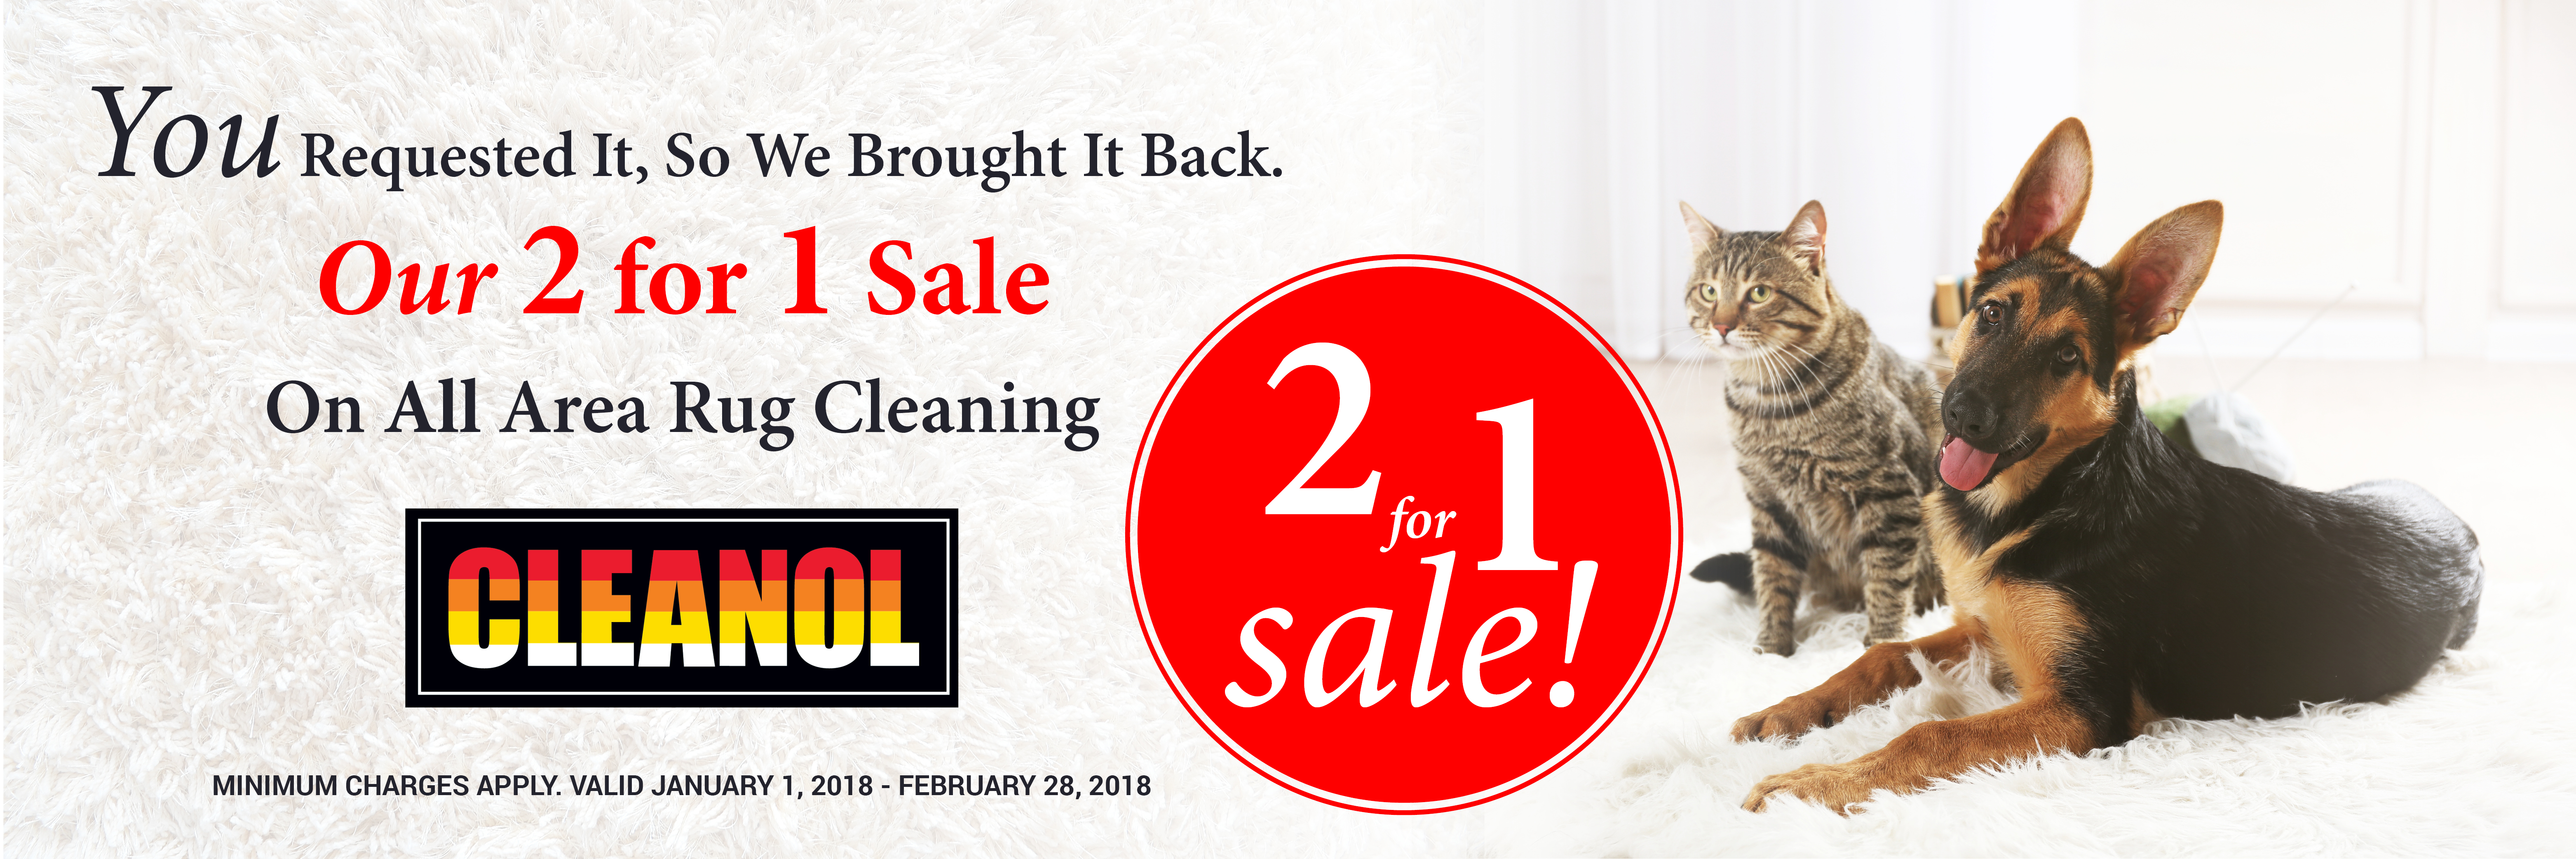 Toronto Area Rug Cleaning Promotion